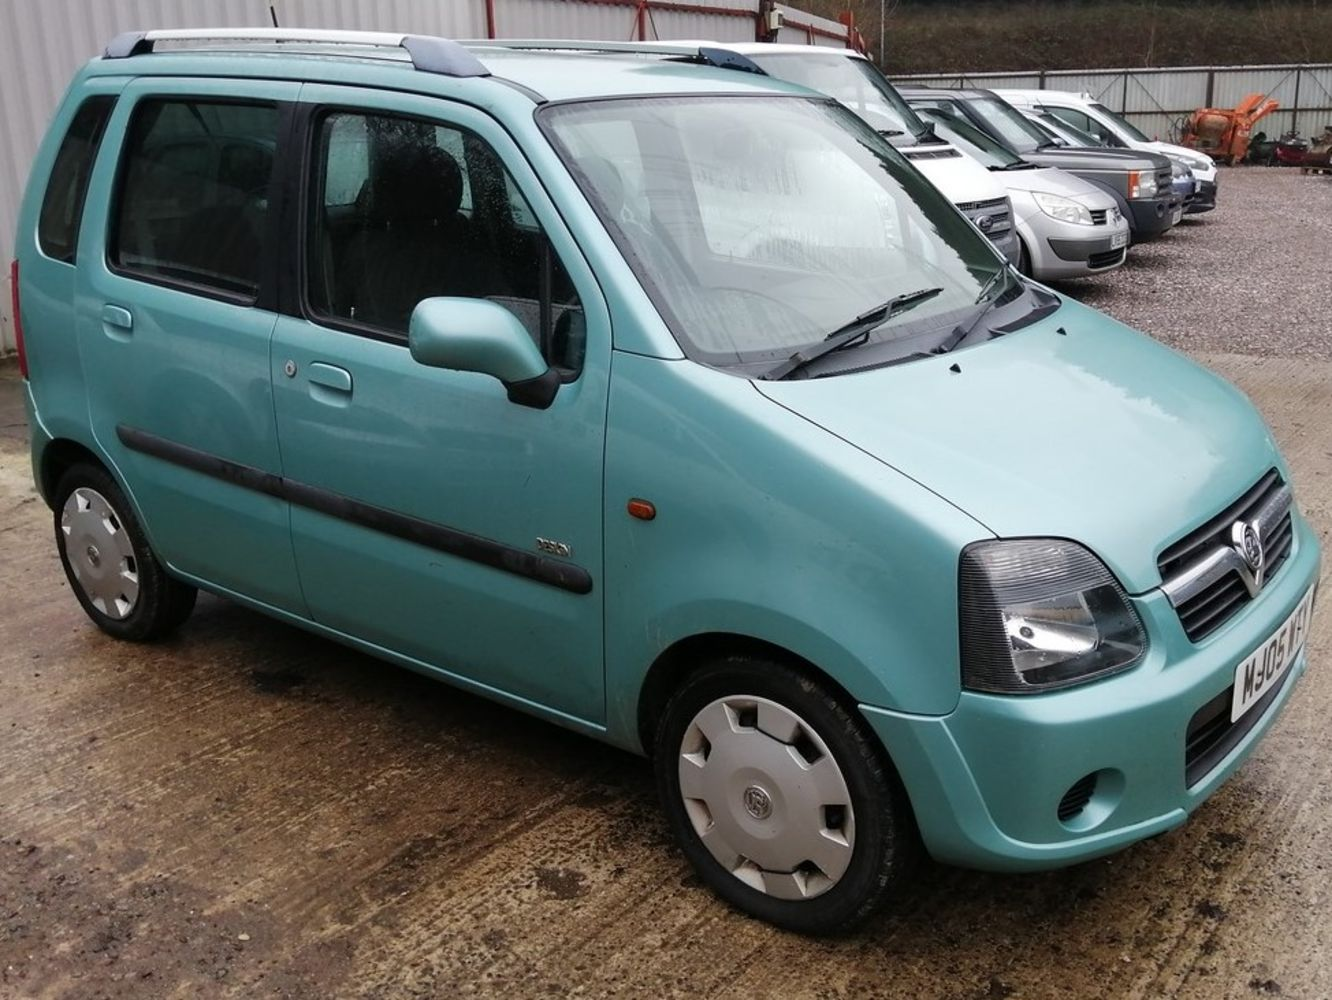 Exeter Car & Commercial Vehicle Auction. Online Bidding Closes from 12.00pm Wednesday 17th March 2021